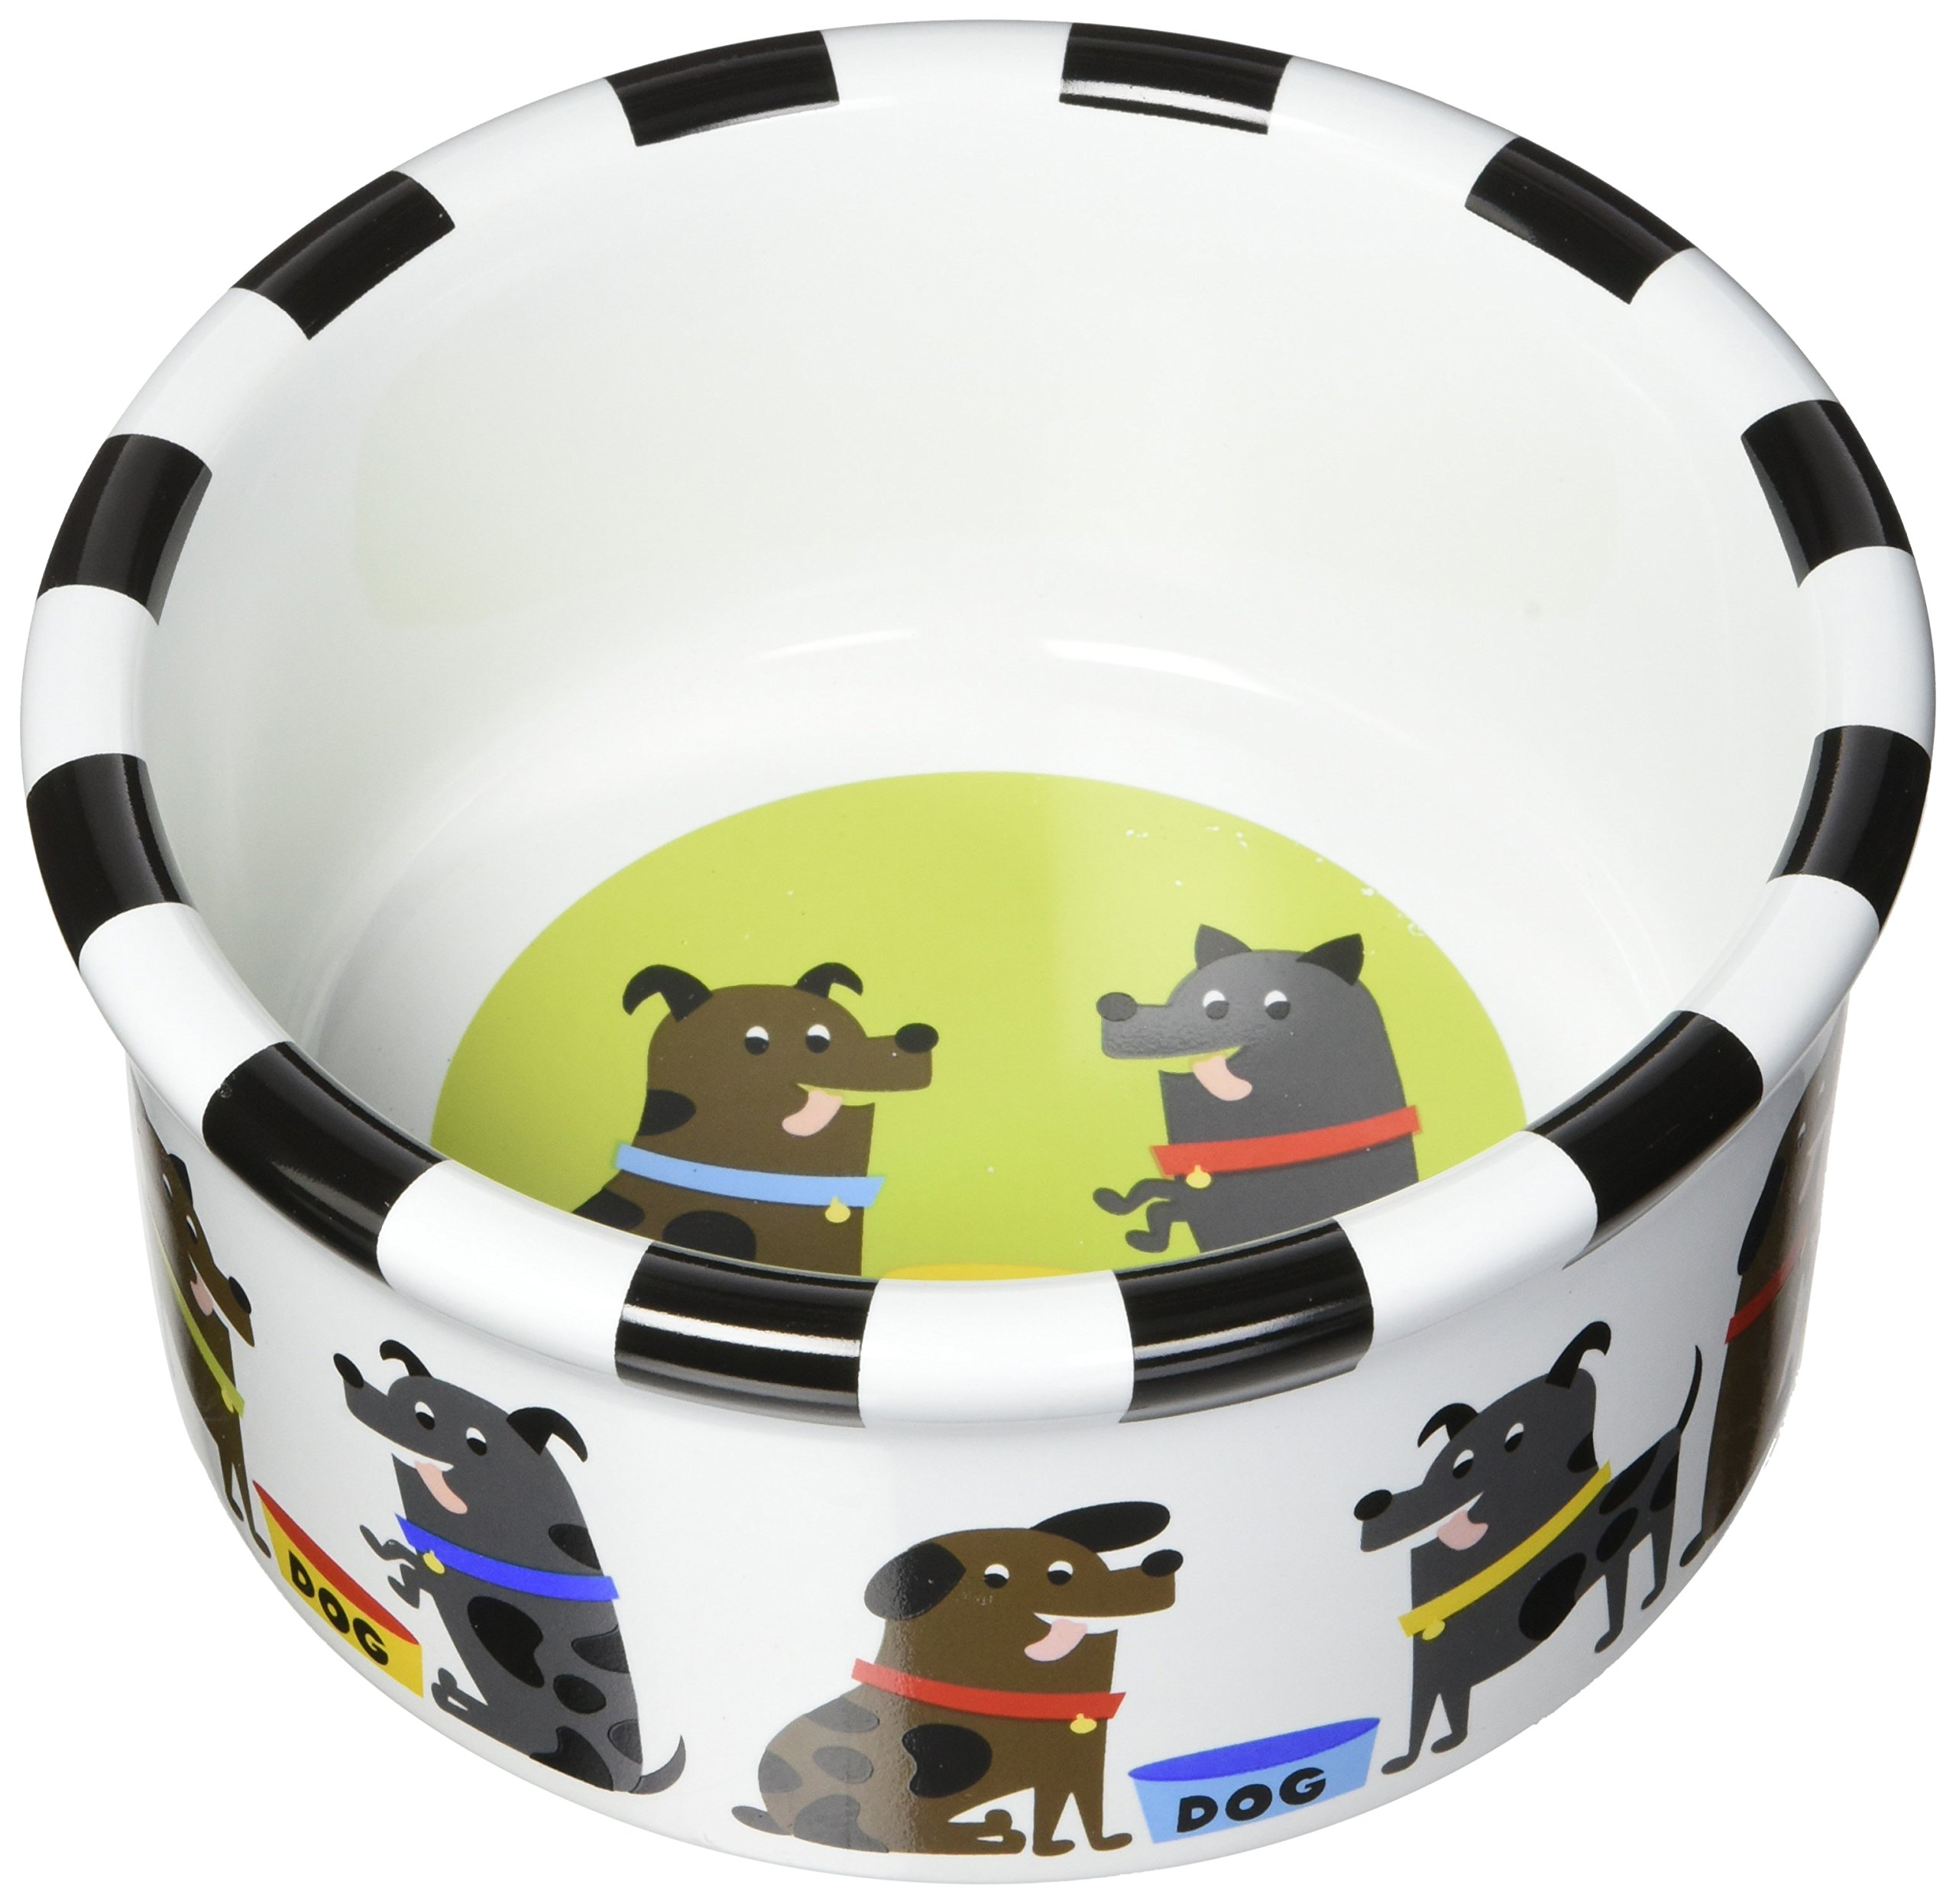 Signature Housewares Pooch Dog Bowl, Small by Signature Housewares